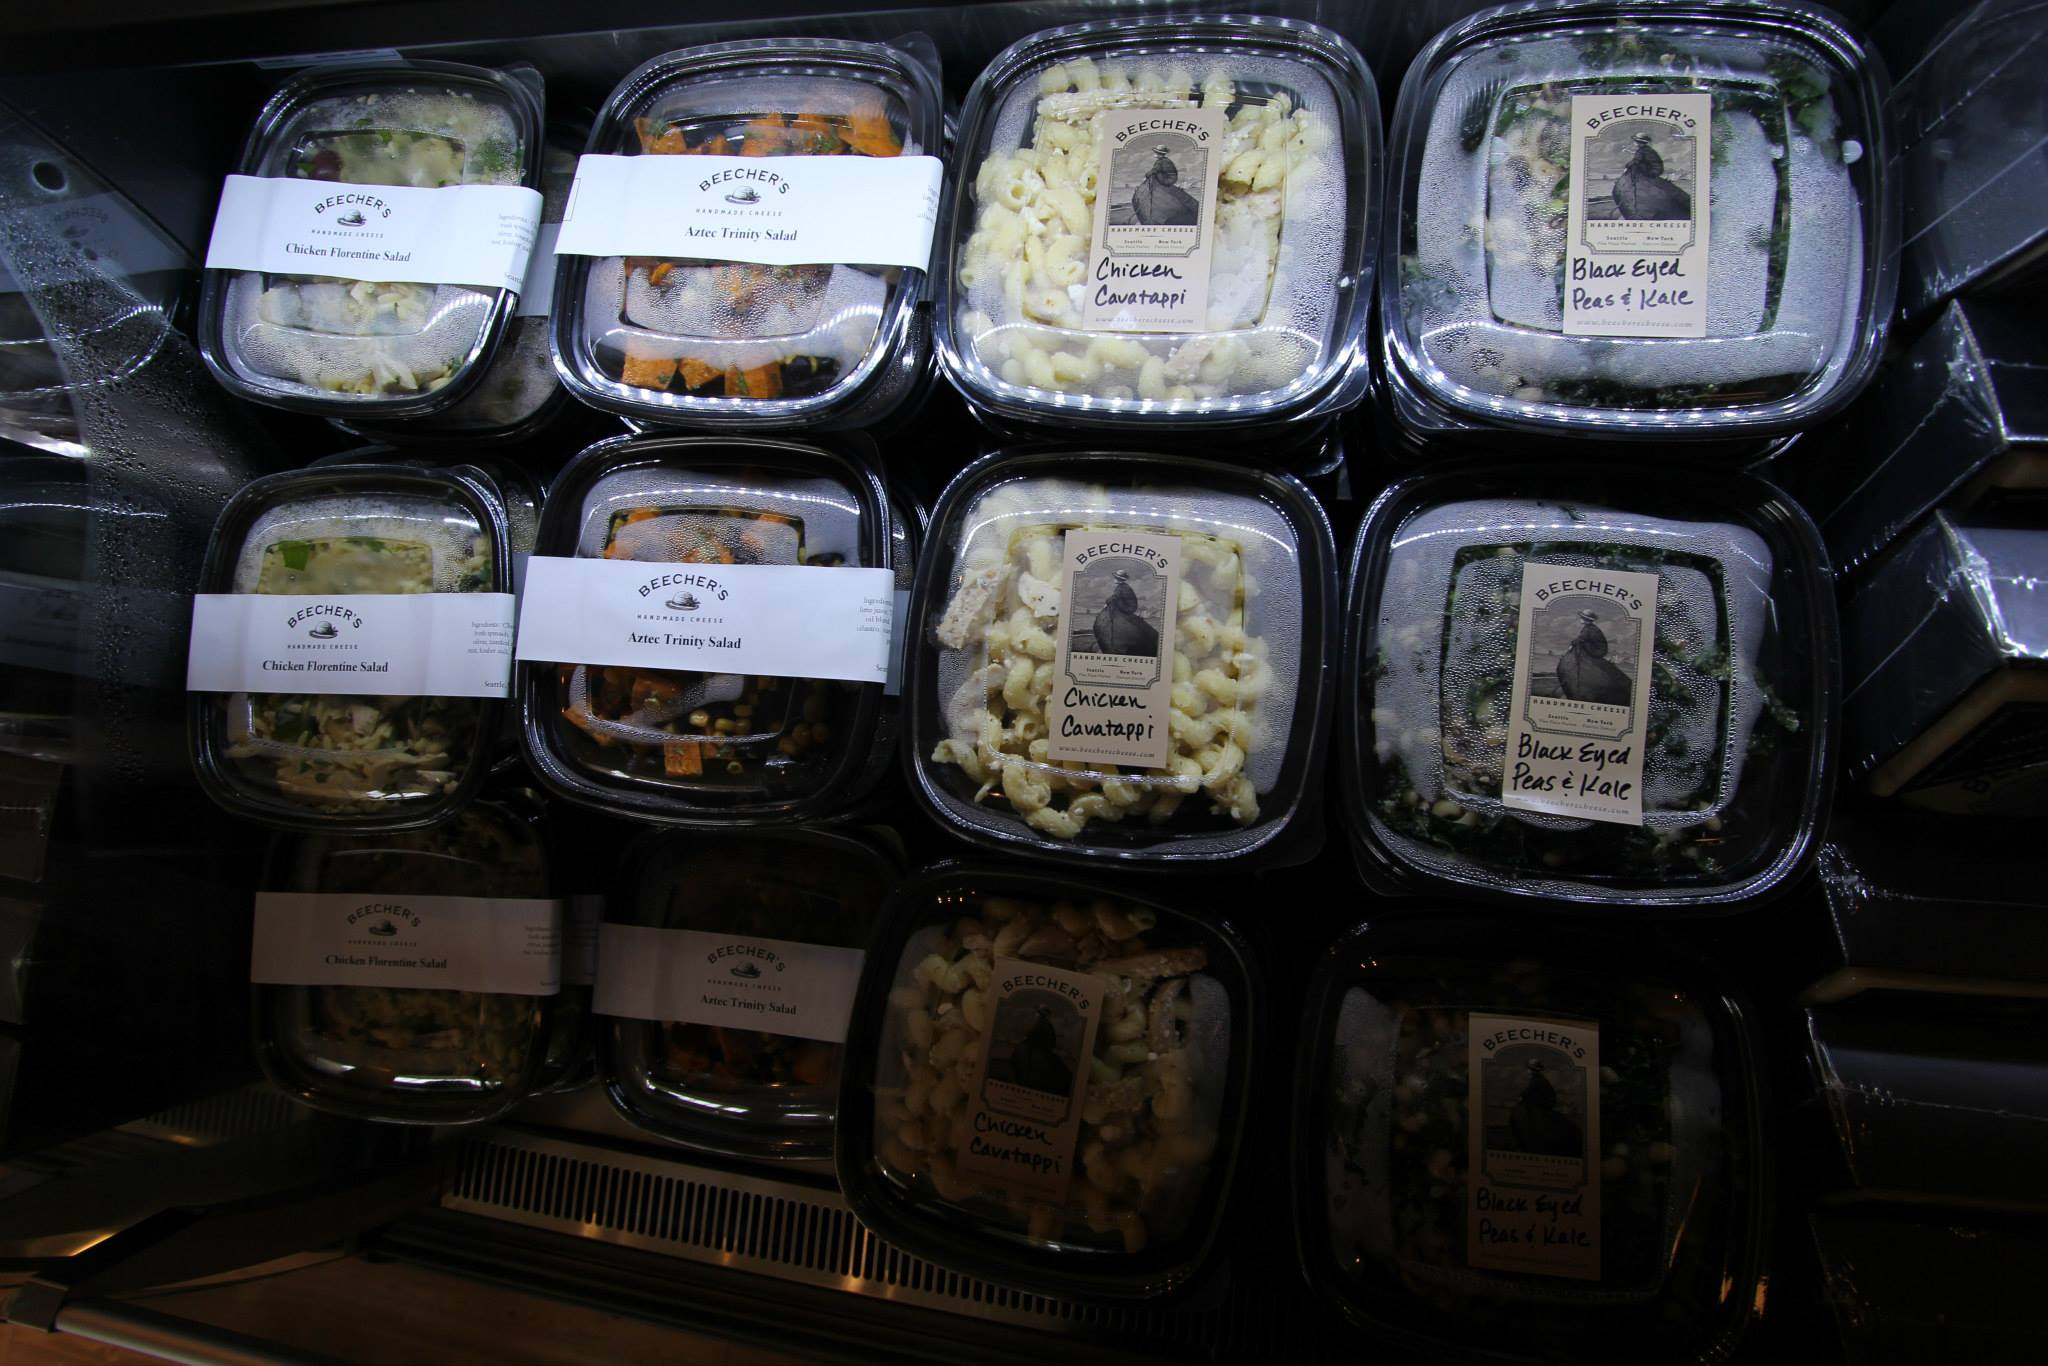 A selection of to-go salads and pastas